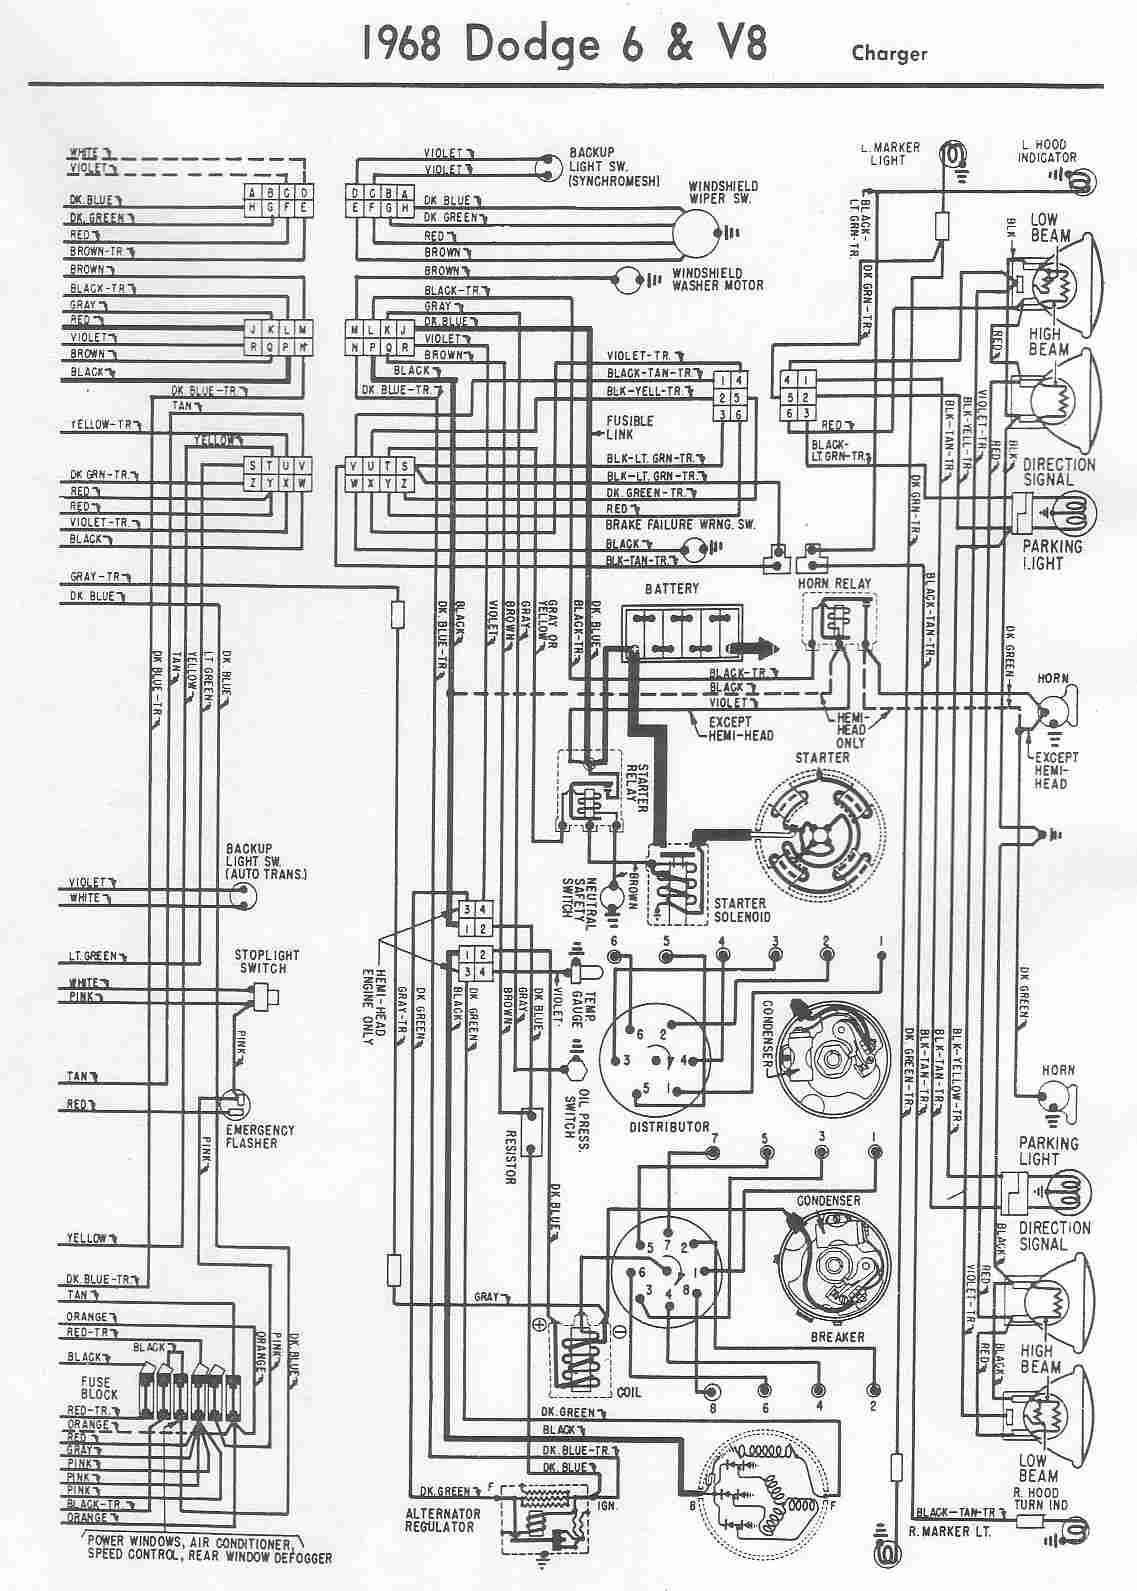 1972 Chevy Truck Starter Wiring Library 79 Dodge Wayfarer Diagram Detailed Schematics Carburetor